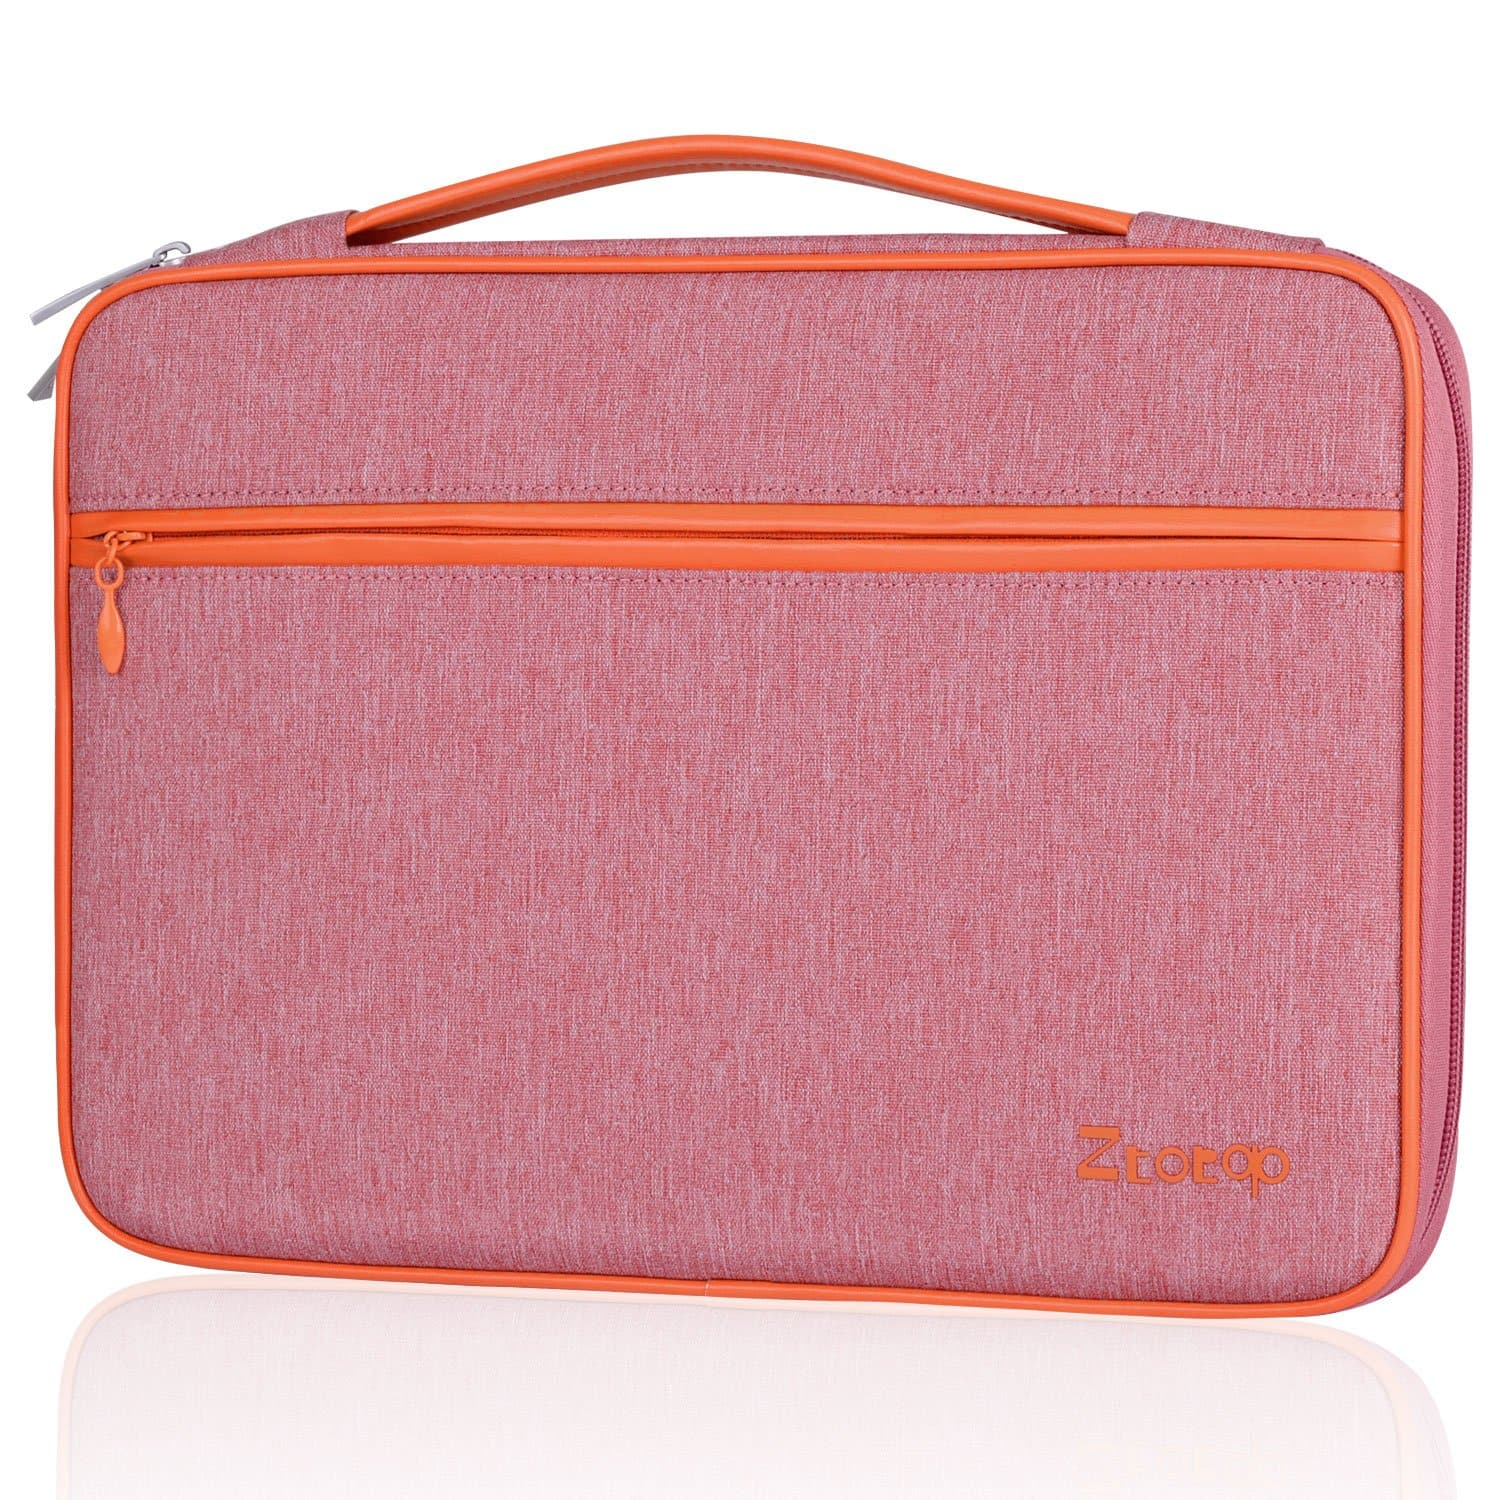 13 inch waterproof laptop sleeve with handle for MacBook Pro / Air, Surface Laptop + more $8.99